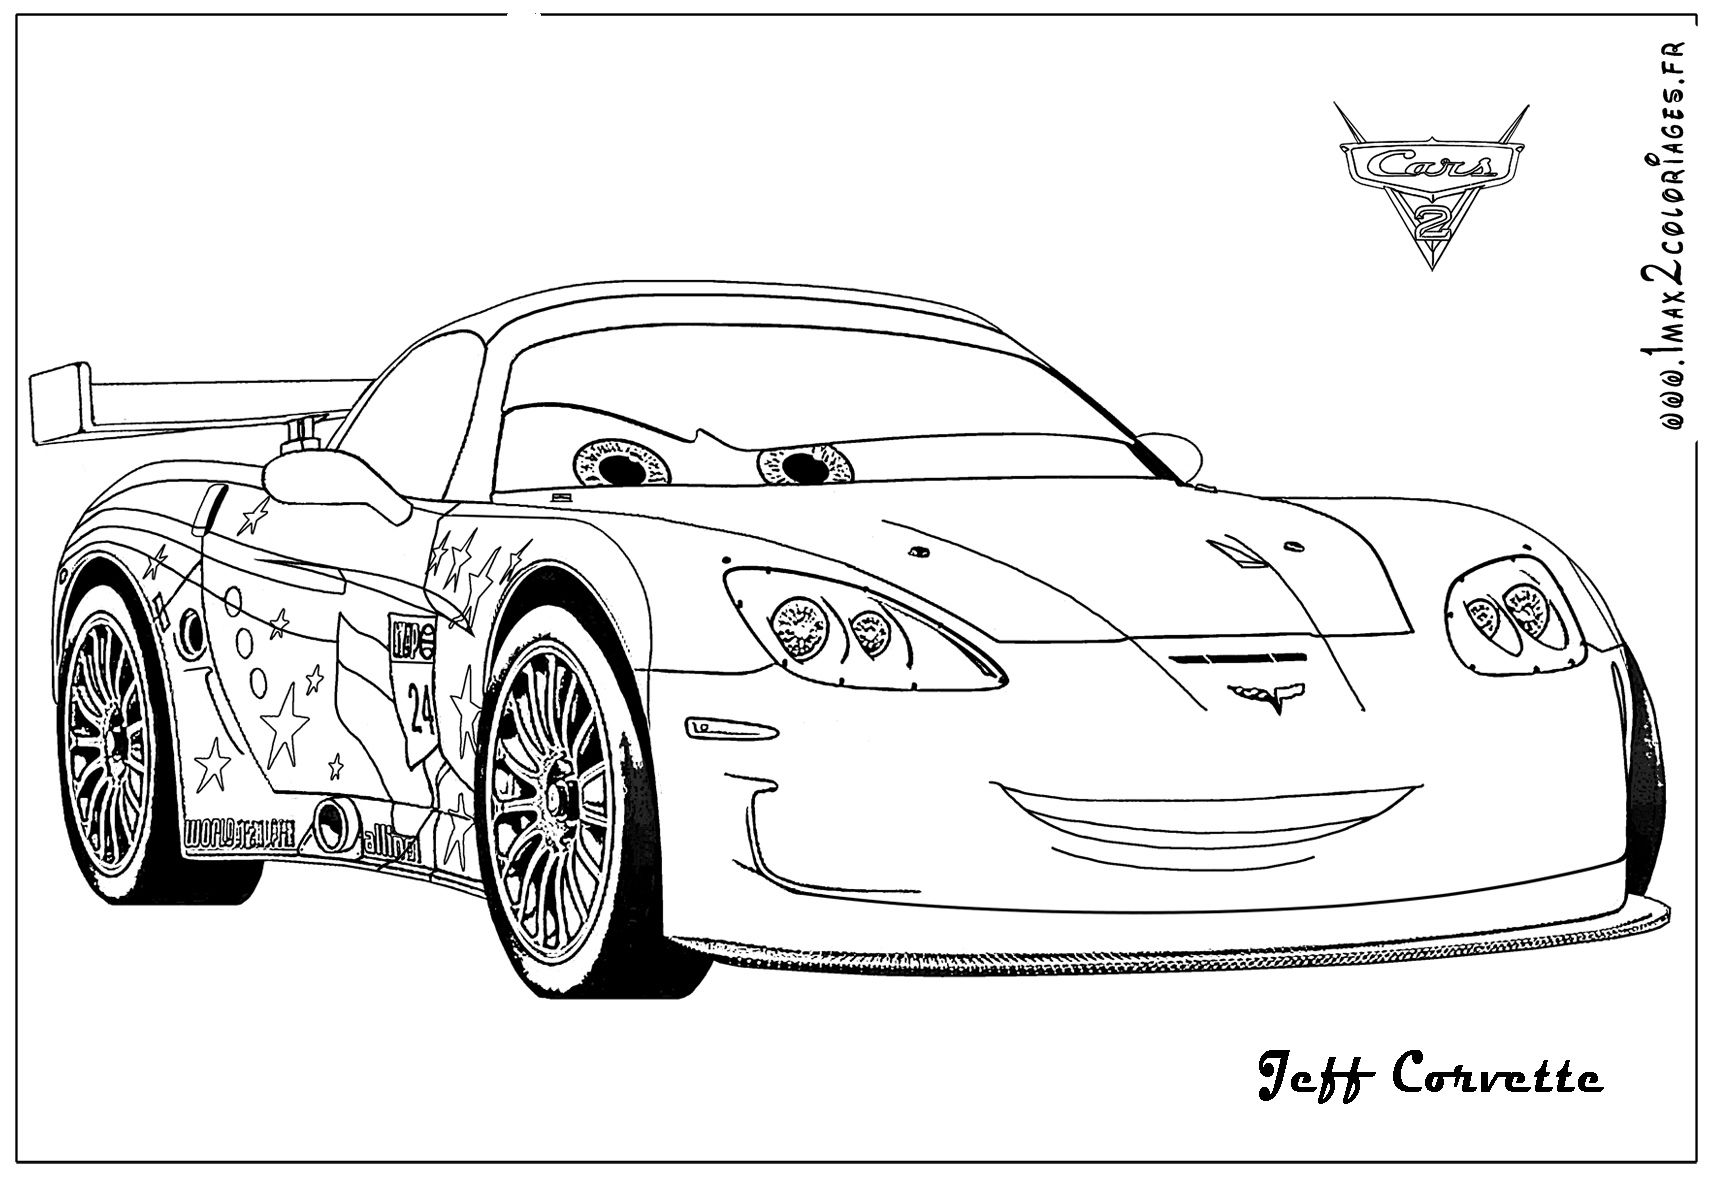 Cars 11 Jeff Corvette Coloring Page | Projects to Try | Pinterest ...